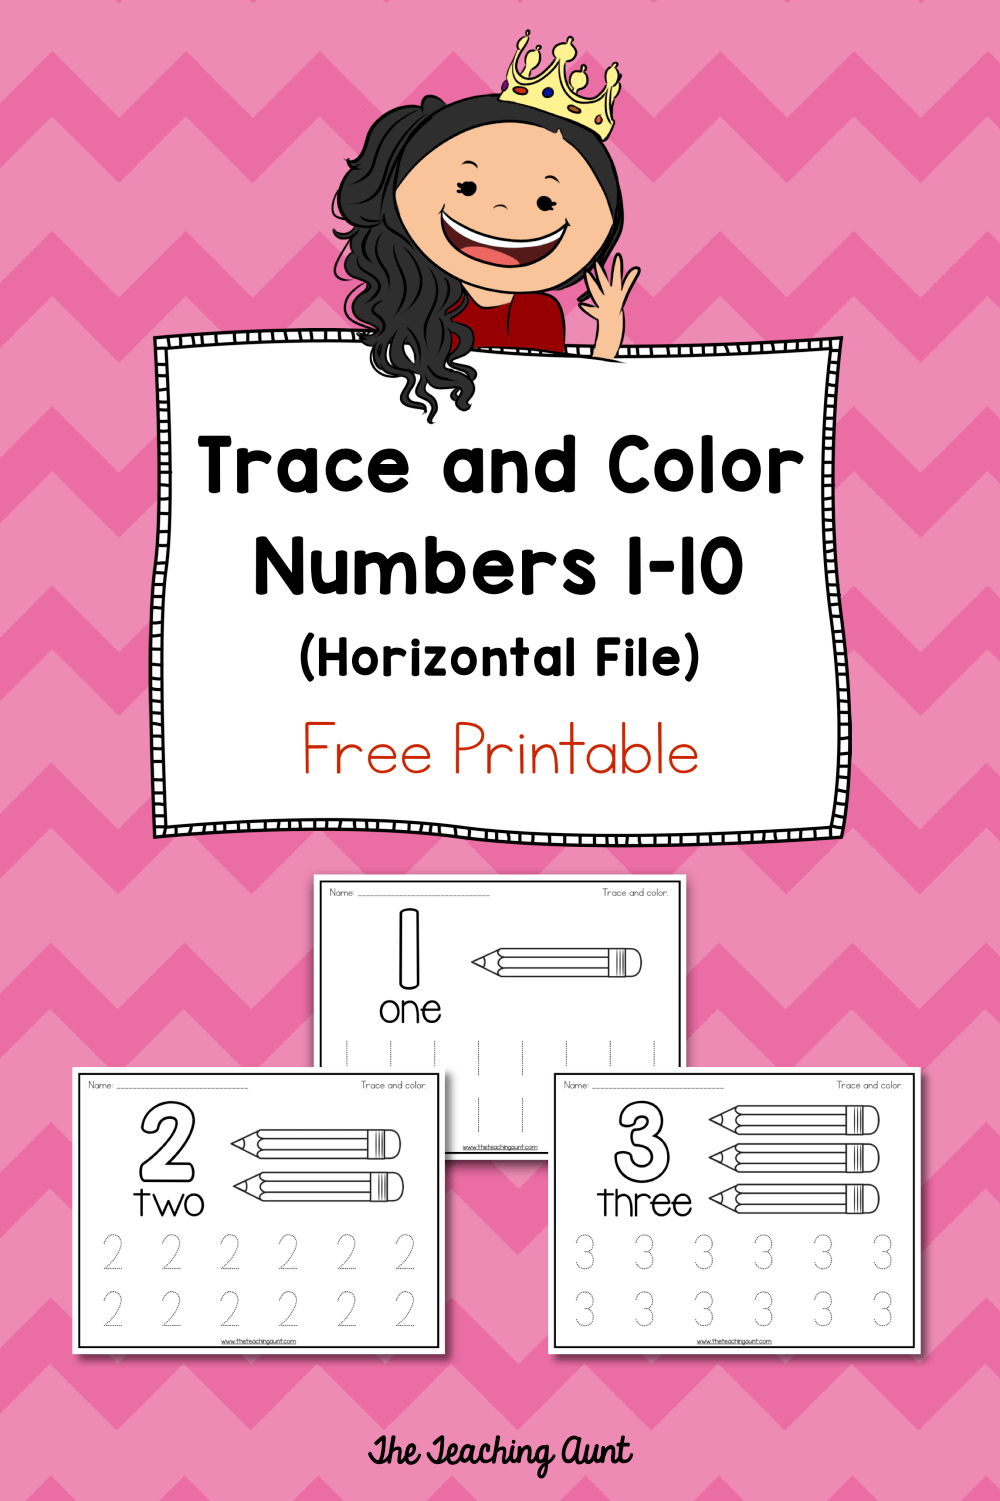 Trace And Color Number Pages Free Printable | Daycare Organization - Free Printable Learning Pages